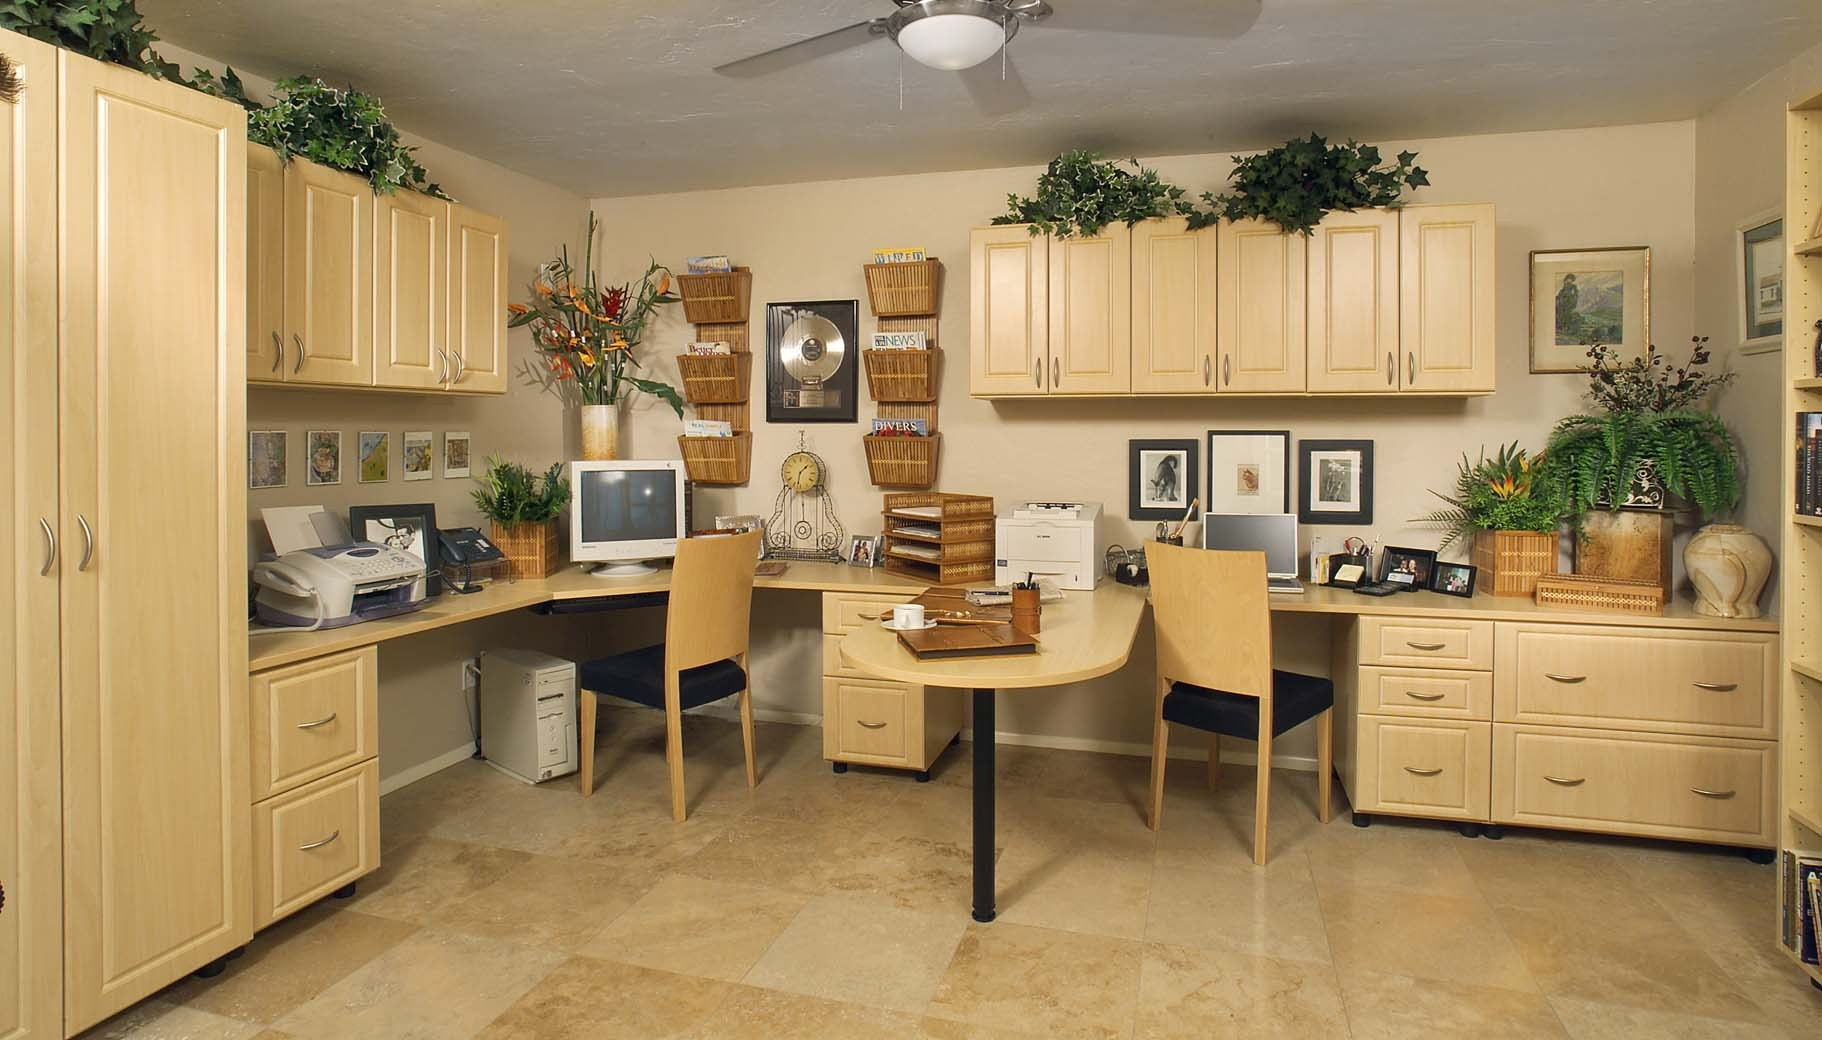 Hung up on storage? We design and install storage and organizing systems for a custom fit in every space.